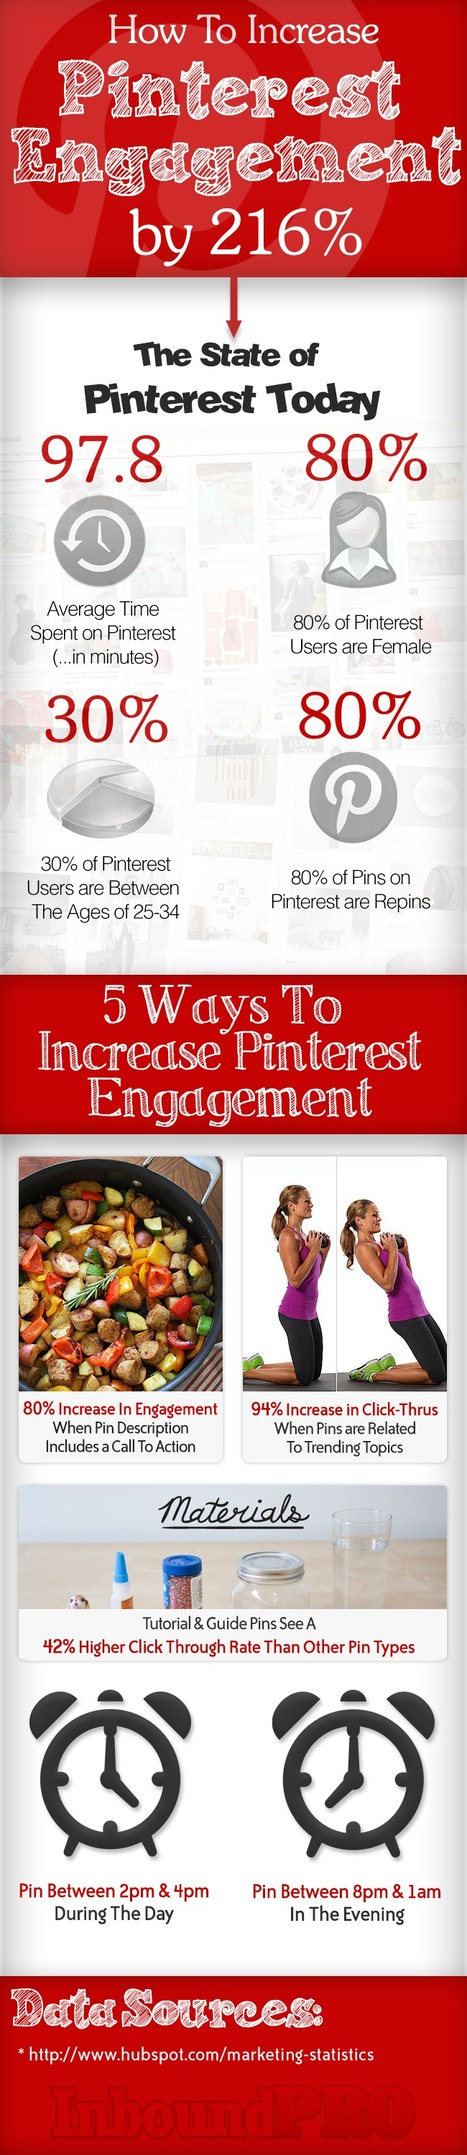 How To Boost Engagement On Pinterest | Social Media, Digital Marketing | Scoop.it